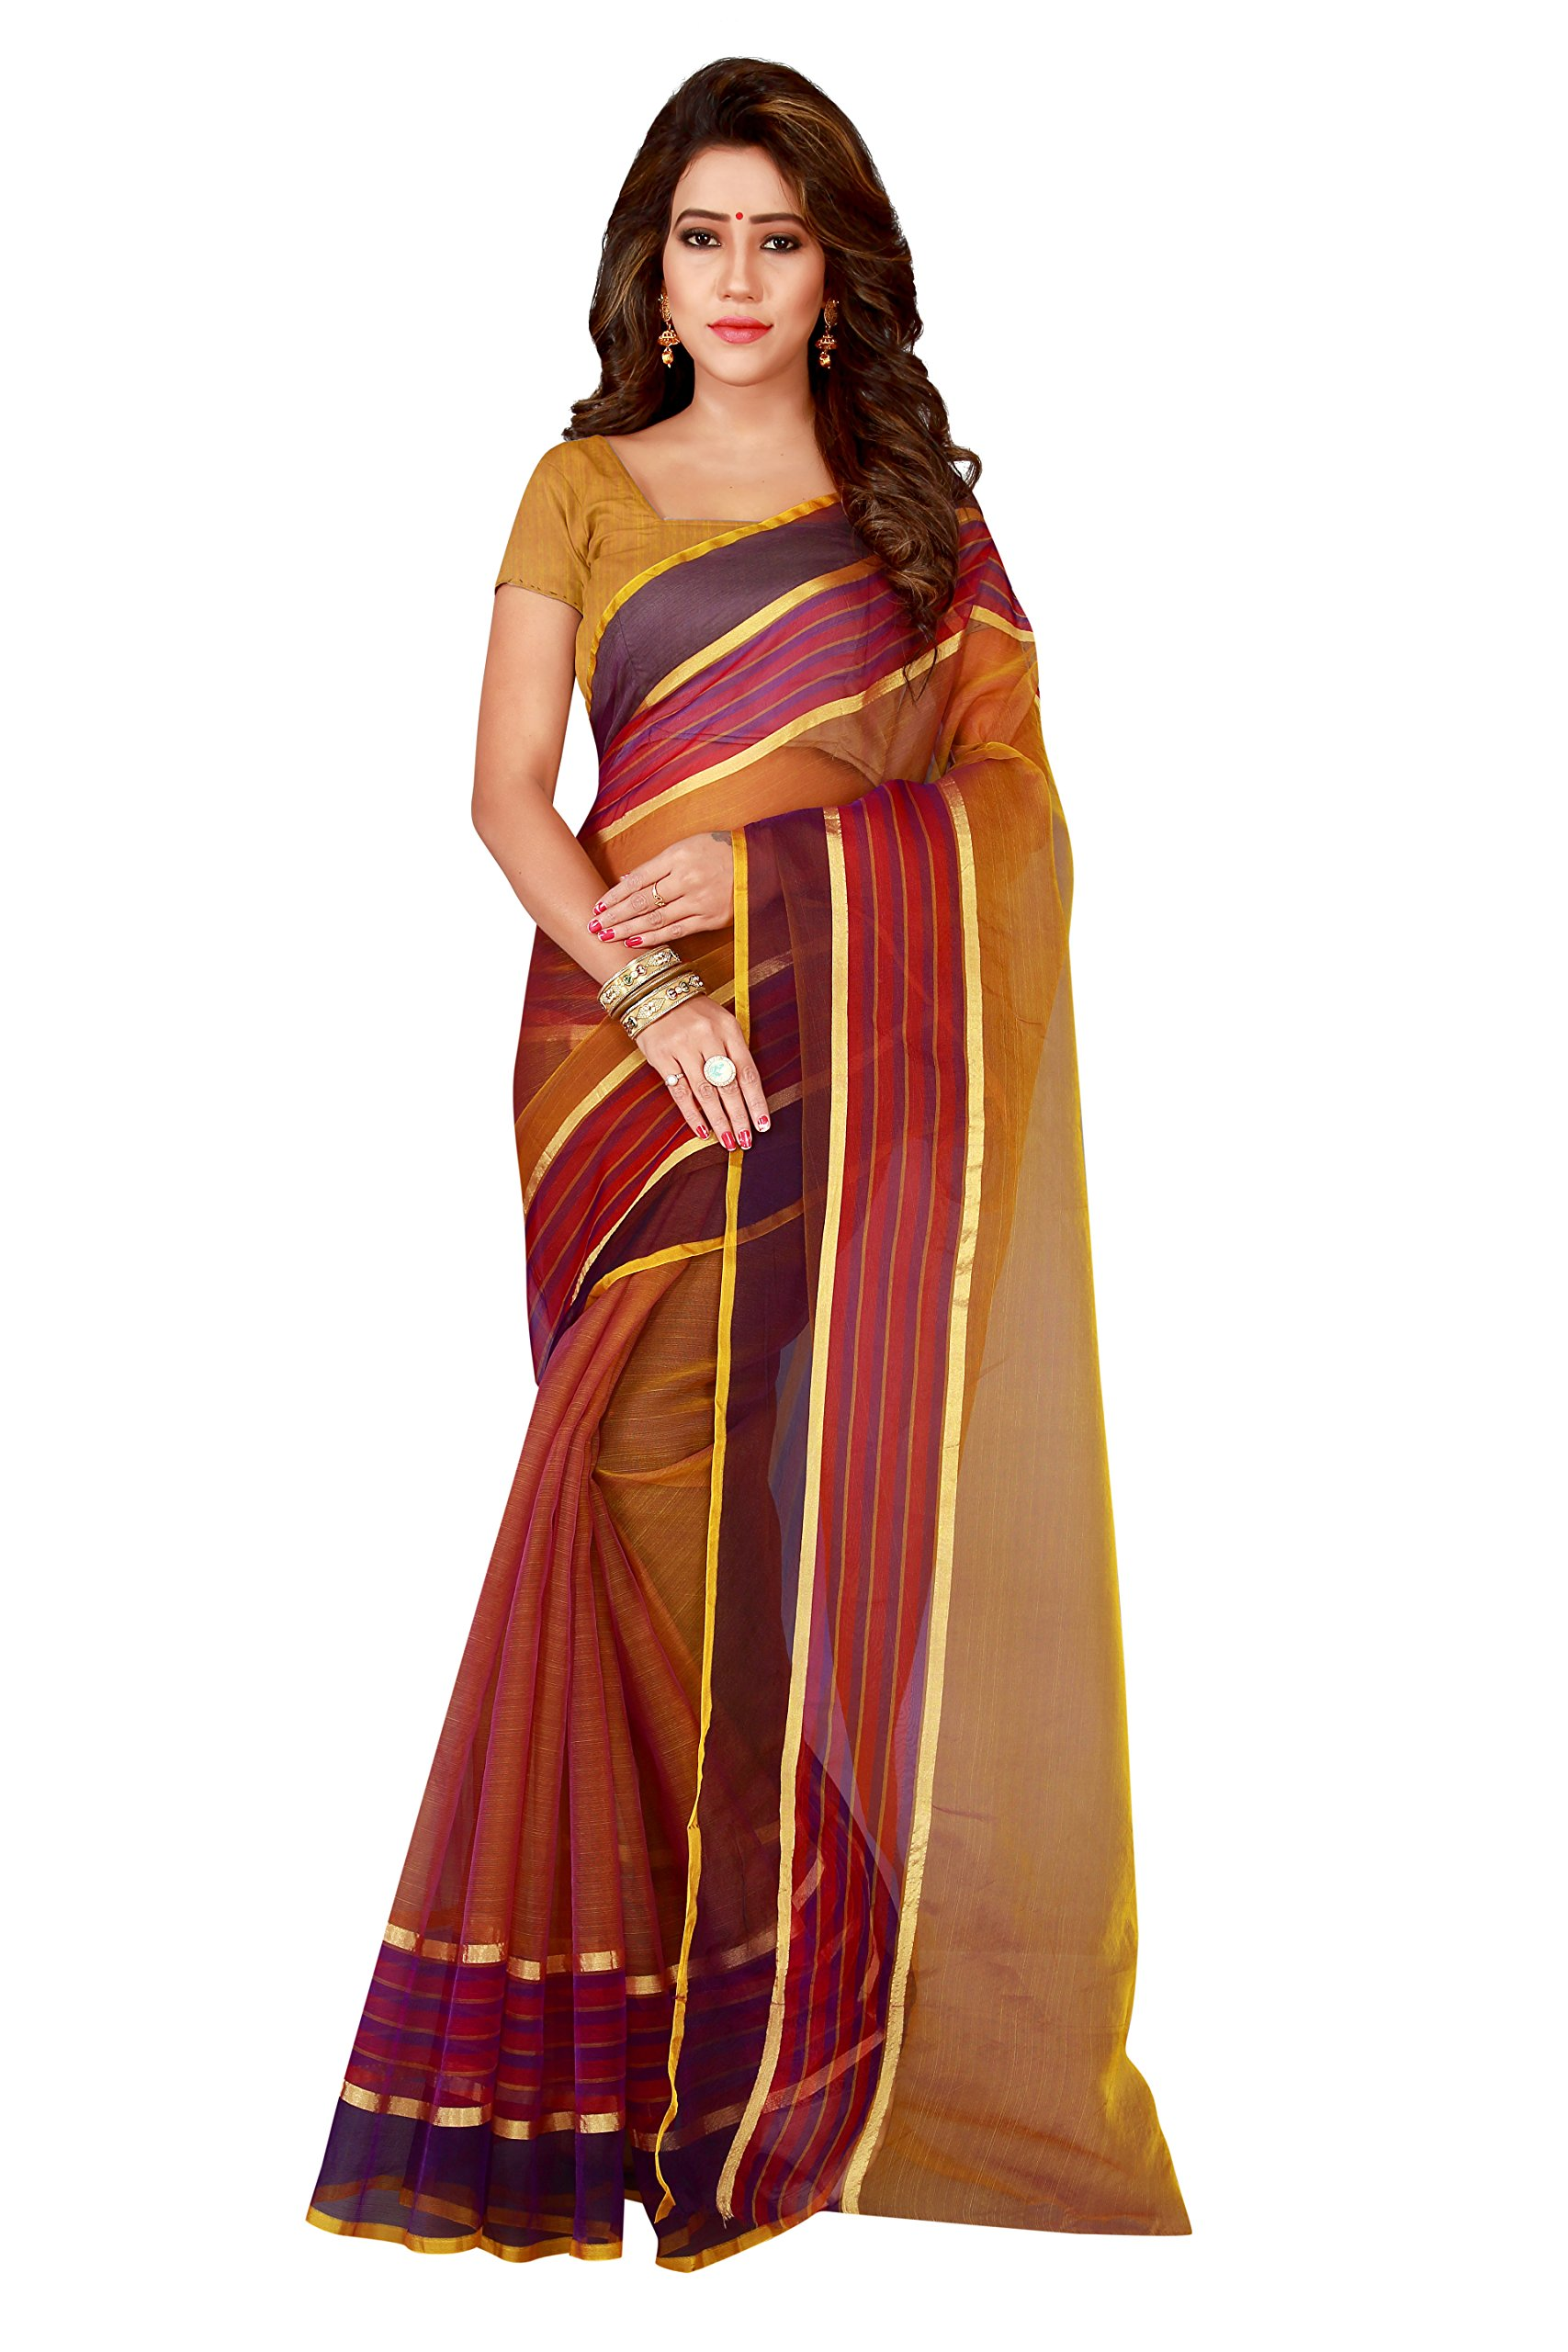 17f1550abdae3b Get Quotations · Shonaya Indian Women`S Party Wear Art Silk Saree With  Unstitched Blouse Piece (Brown